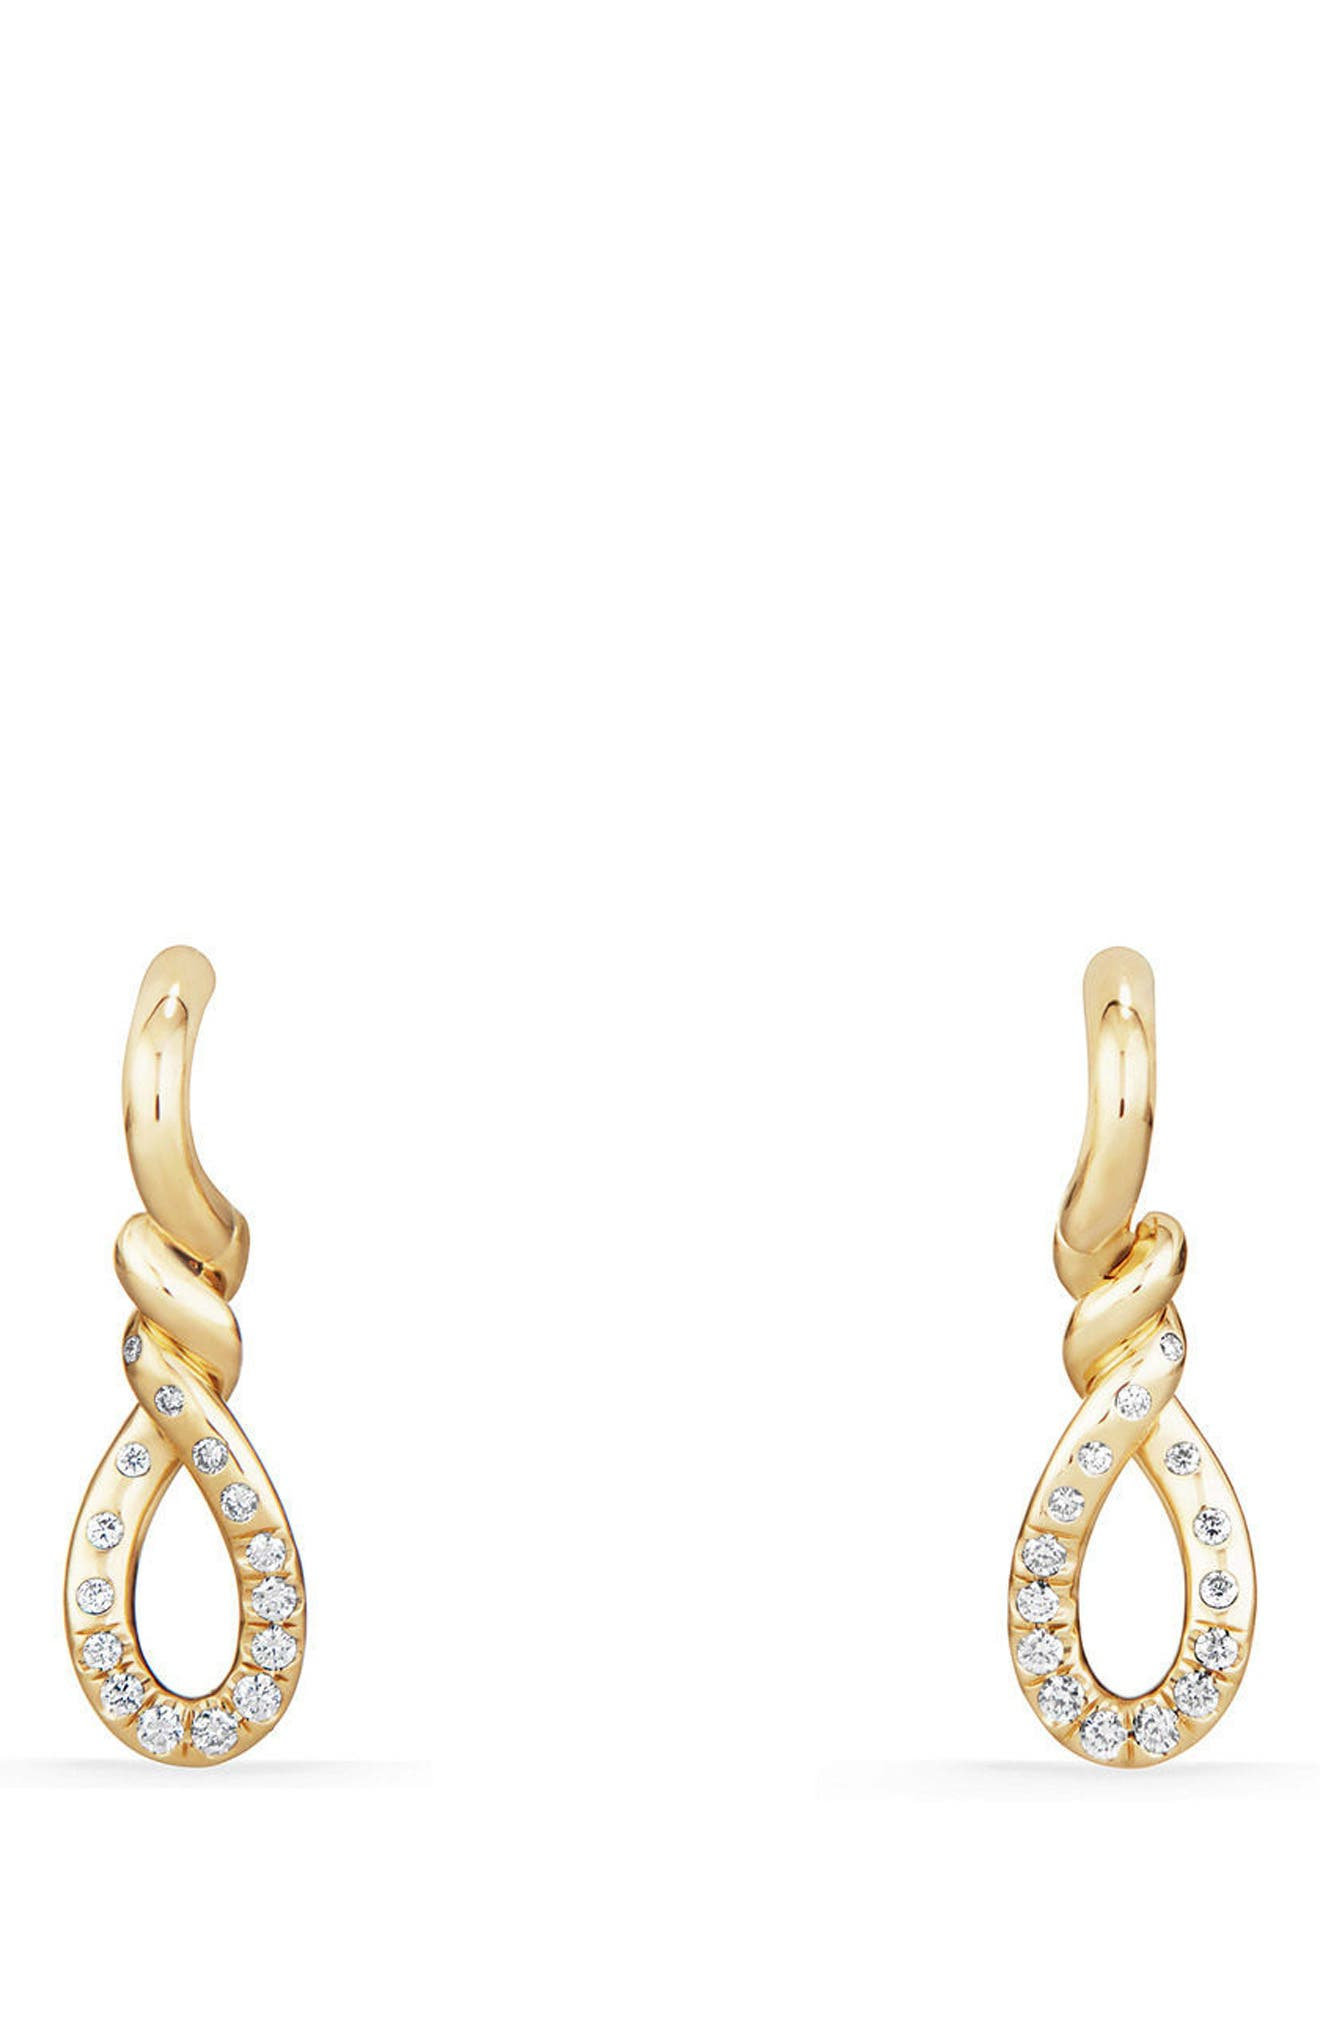 Continuance Drop Earrings in 18K Gold with Diamonds,                         Main,                         color, YELLOW GOLD